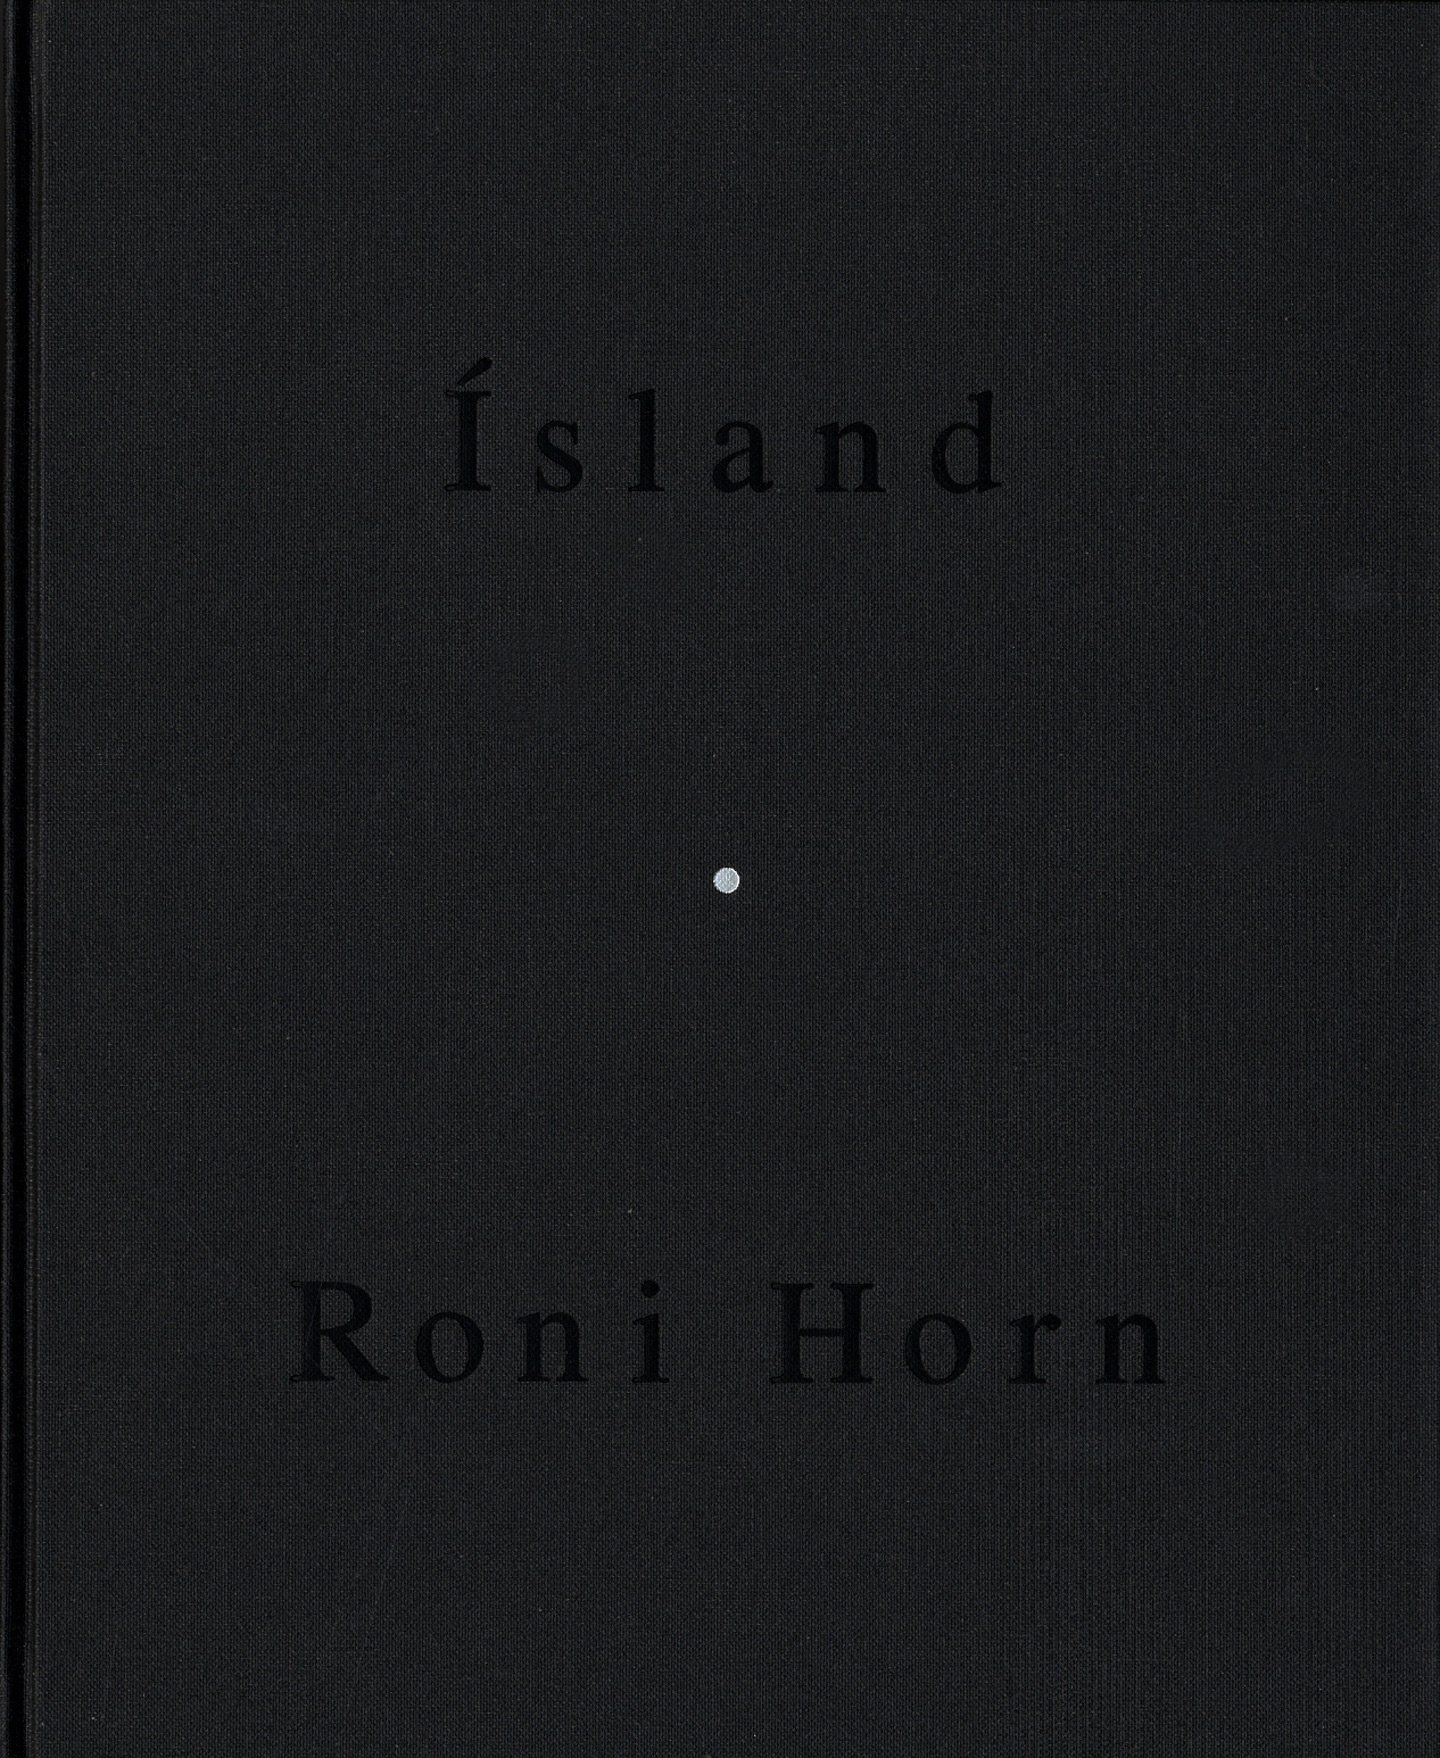 Roni Horn: Ísland: To Place 1-10 (Complete Set, with Inner Geography supplement) [all volumes SIGNED, all in AS NEW Condition]: 1) Bluff Life; 2) Folds; 3) Lava; 4) Pooling Waters (2 volumes); 5) Verne's Journey; 6) Haraldsdóttir; 7) Arctic Circles; 8) Becoming a Landscape (two volume boxed set); 9) Doubt Box (boxed set); 10) Haraldsdóttir, Part Two; 11) Inner Geography (catalogue supplement)